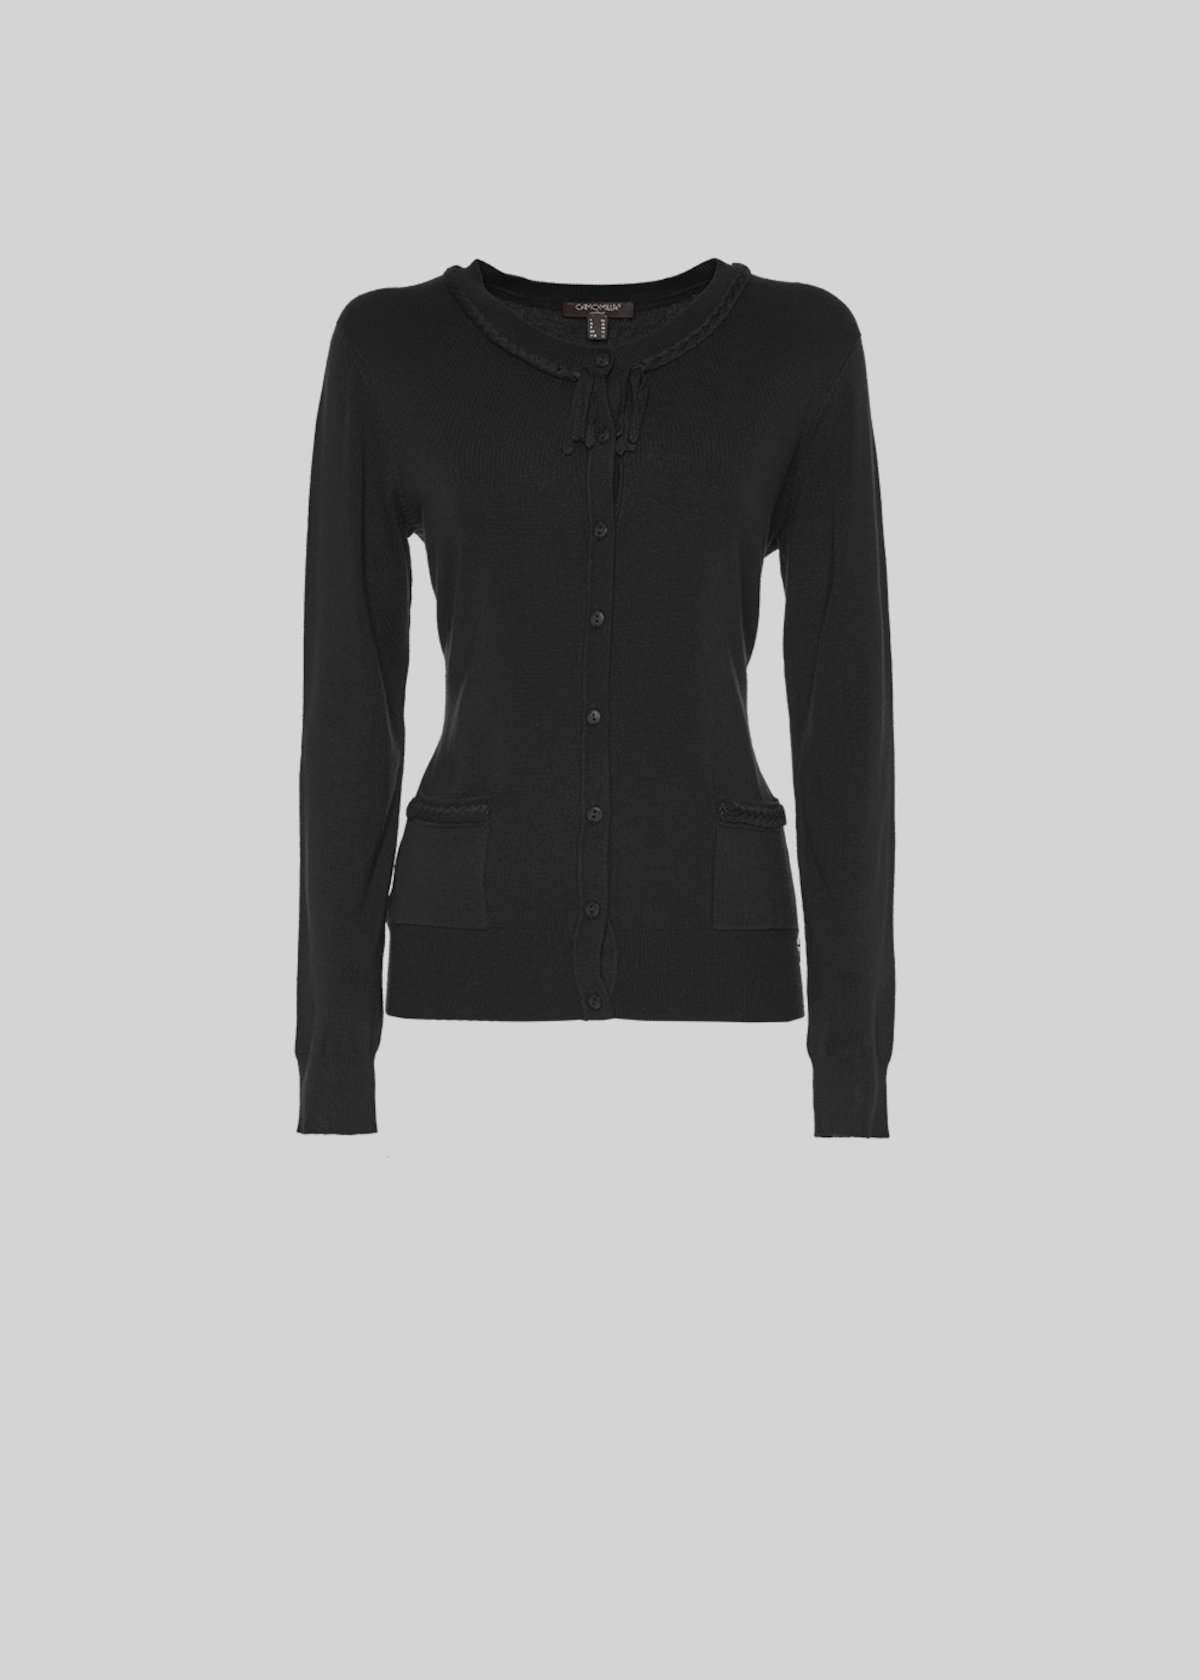 Carl Cardigan with small pockets and weaving detail - Black